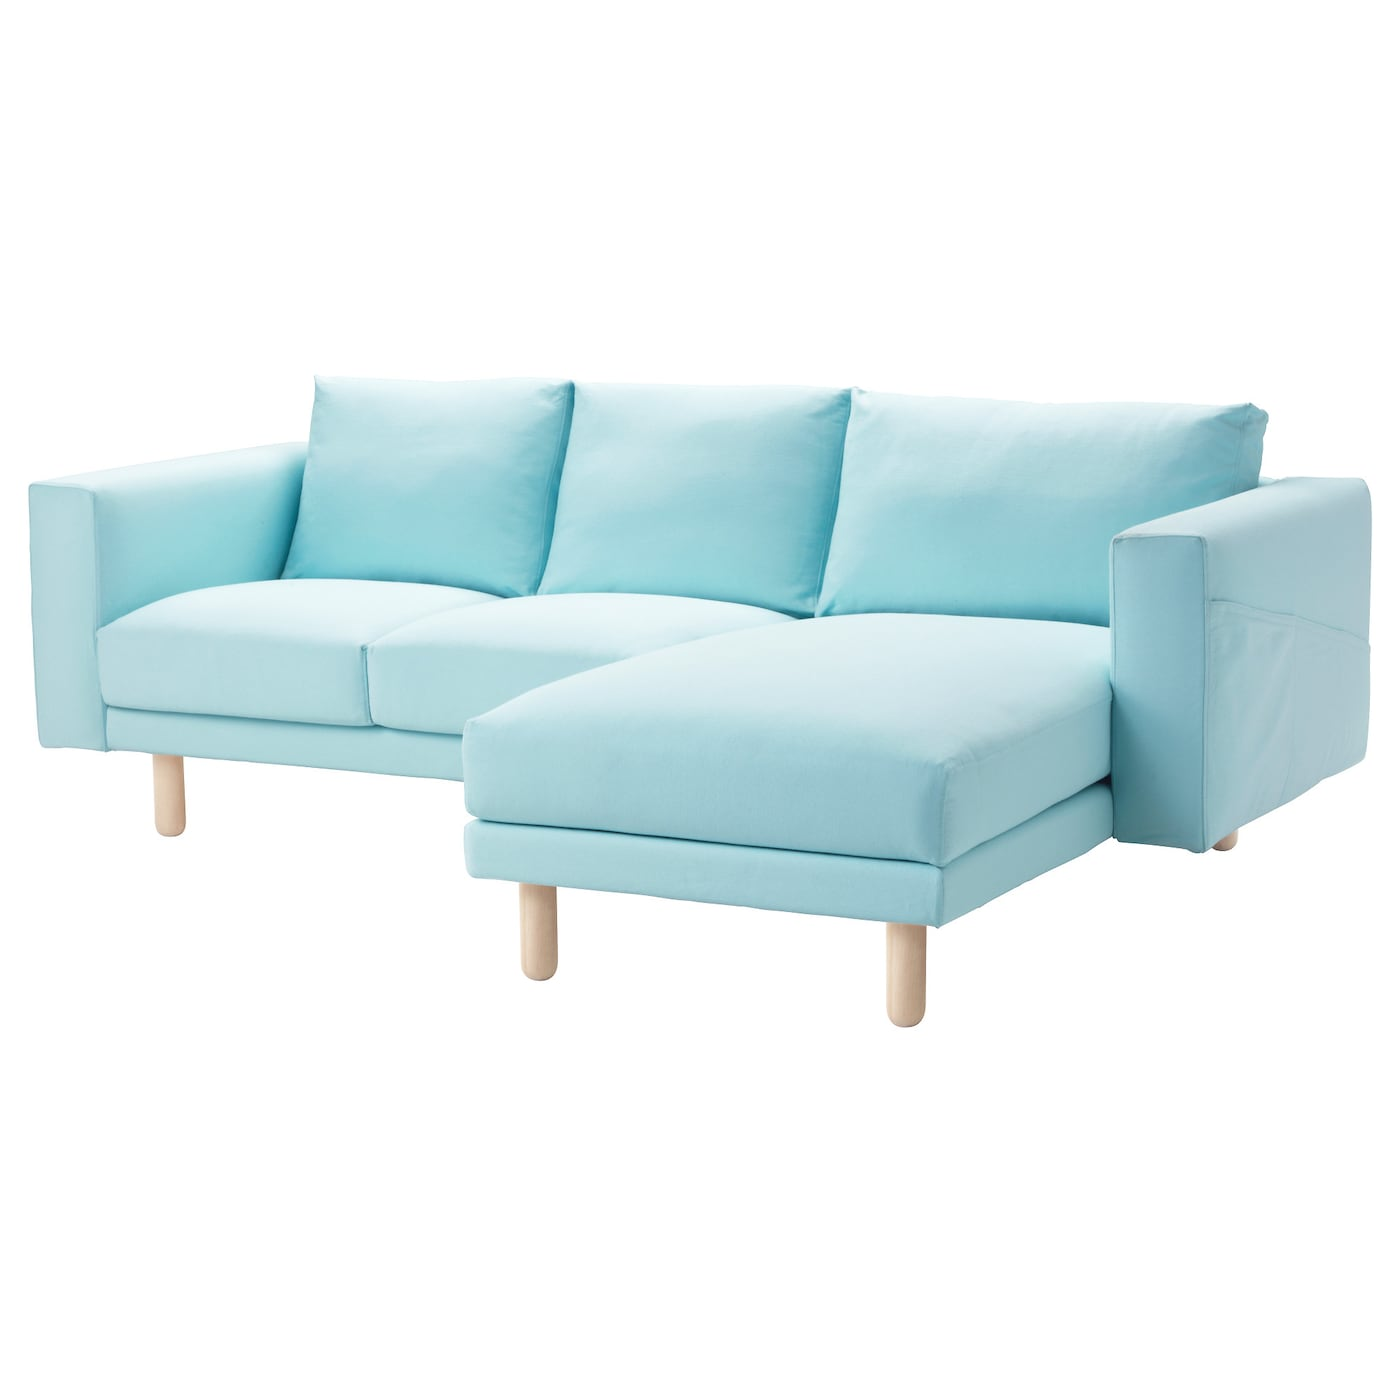 Norsborg two seat sofa with chaise longue gr sbo light for 2 seater chaise sofa